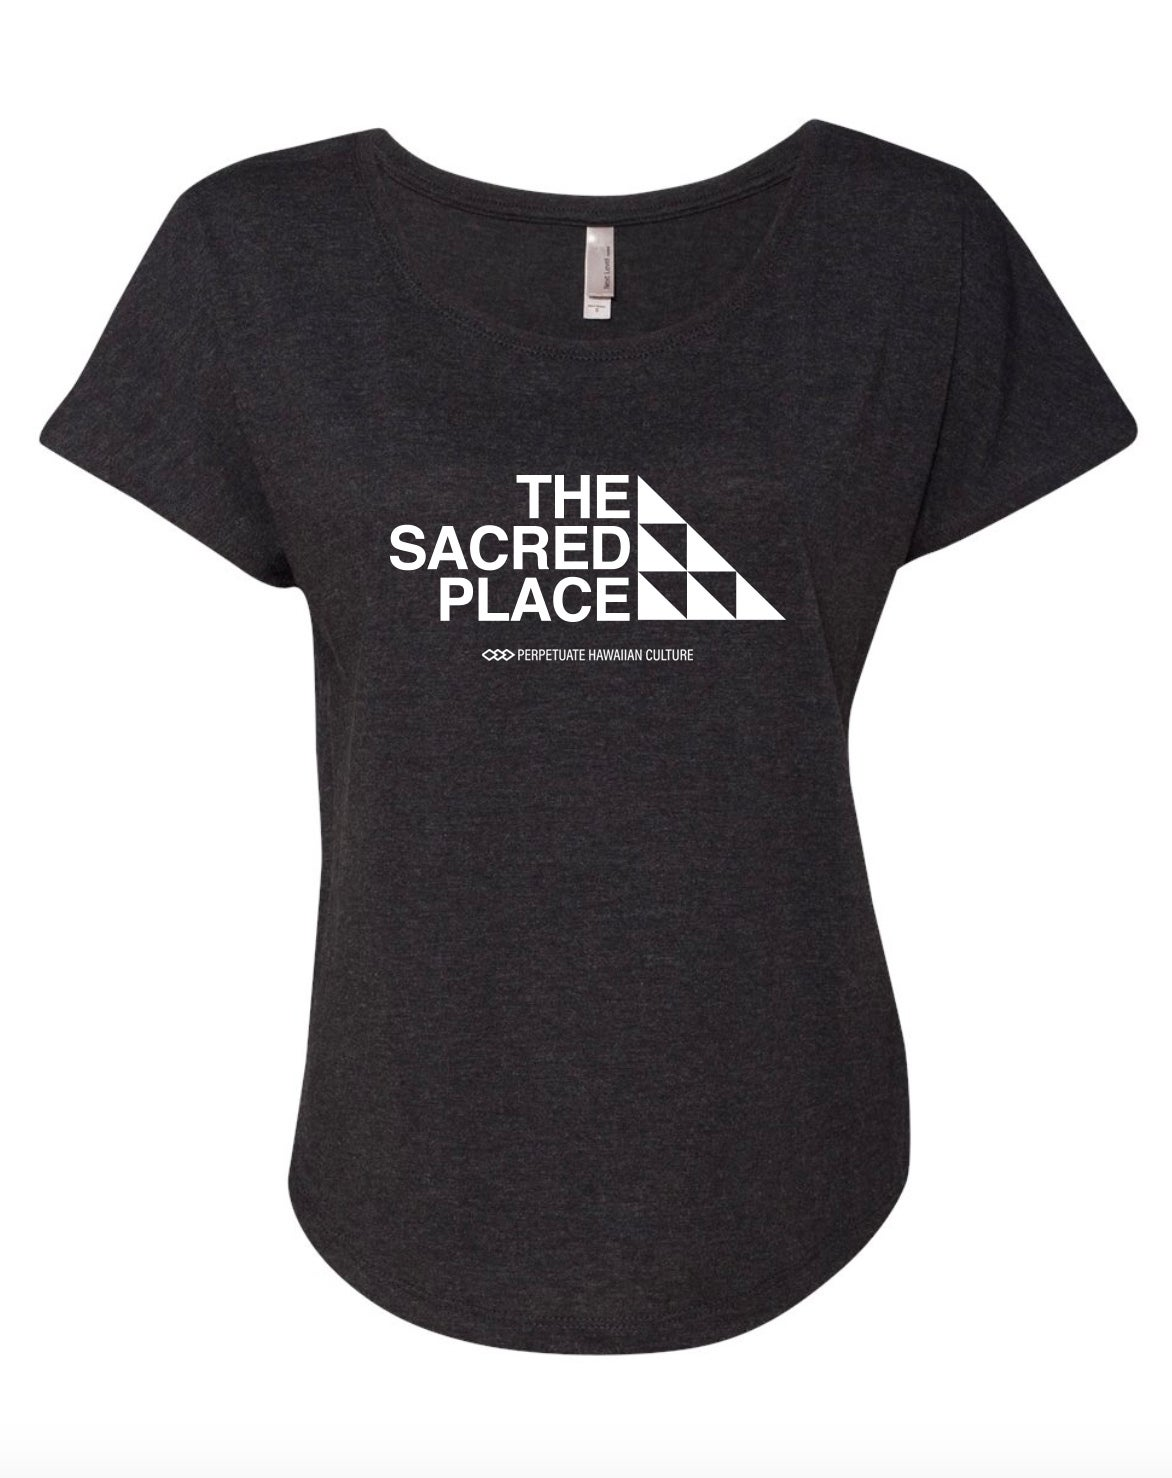 Image of The Sacred Place Shirt (Women's Dolman White)